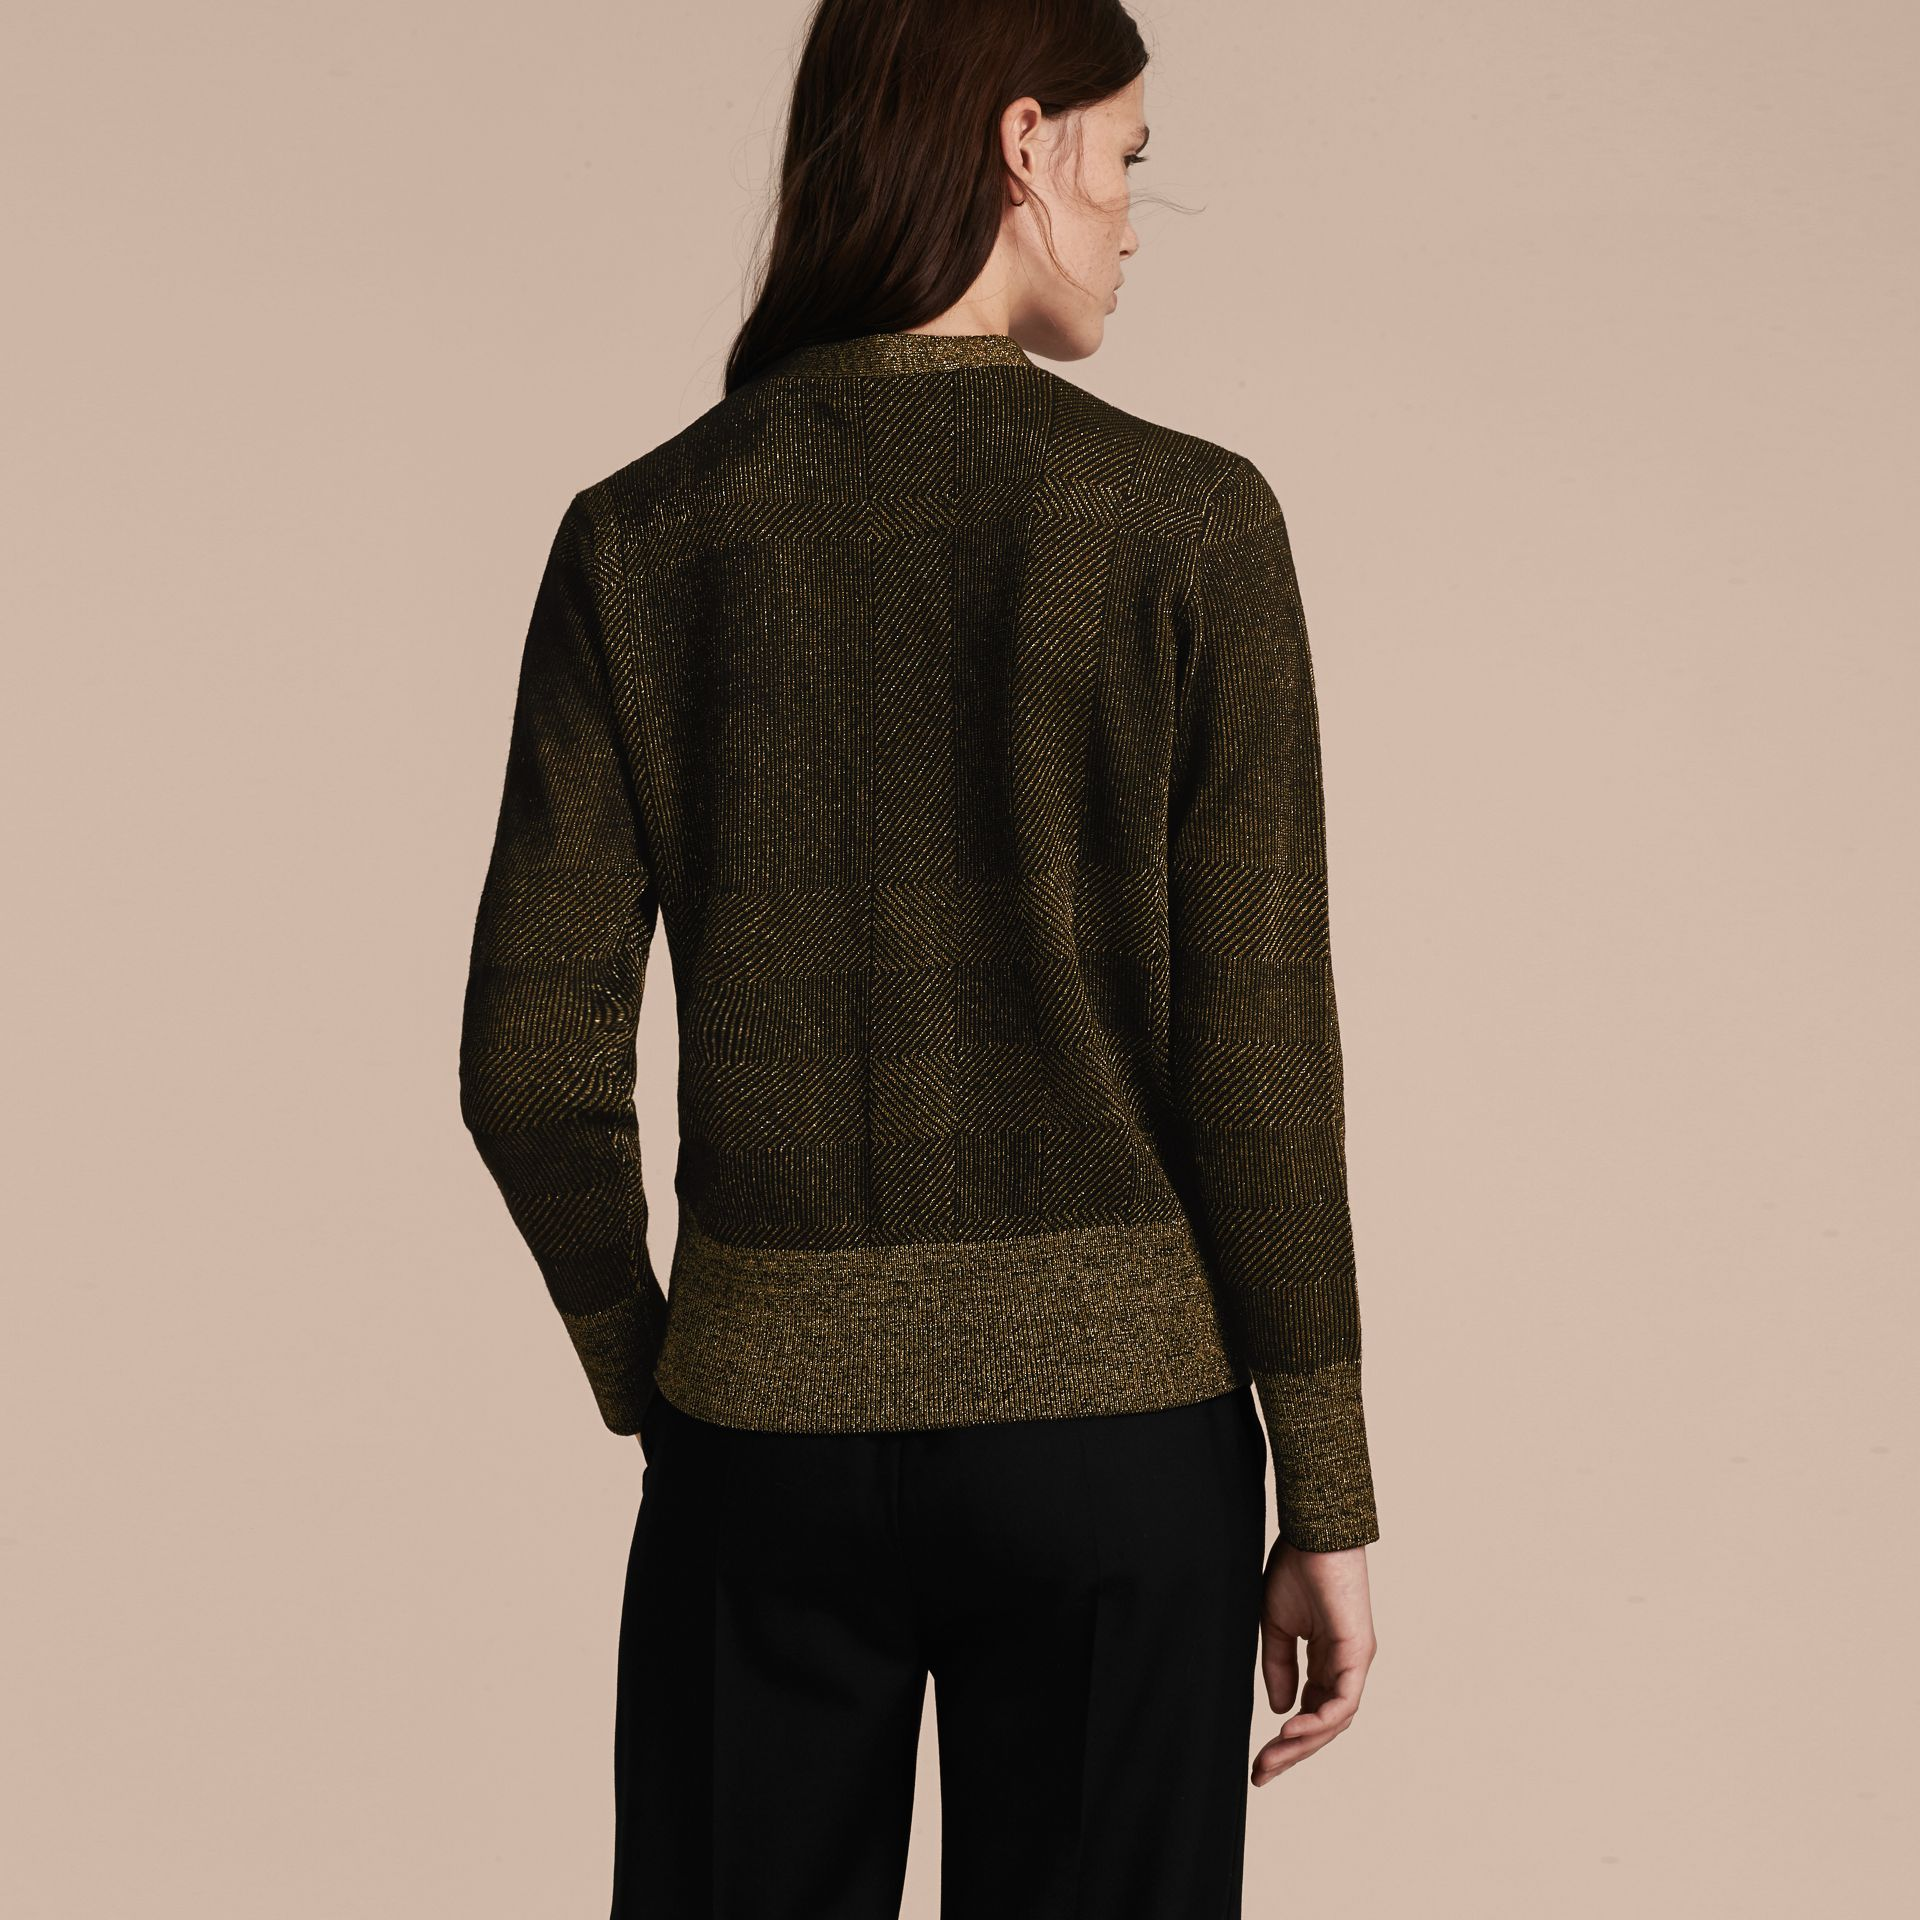 Check Merino Wool and Metallic Cardigan - gallery image 3